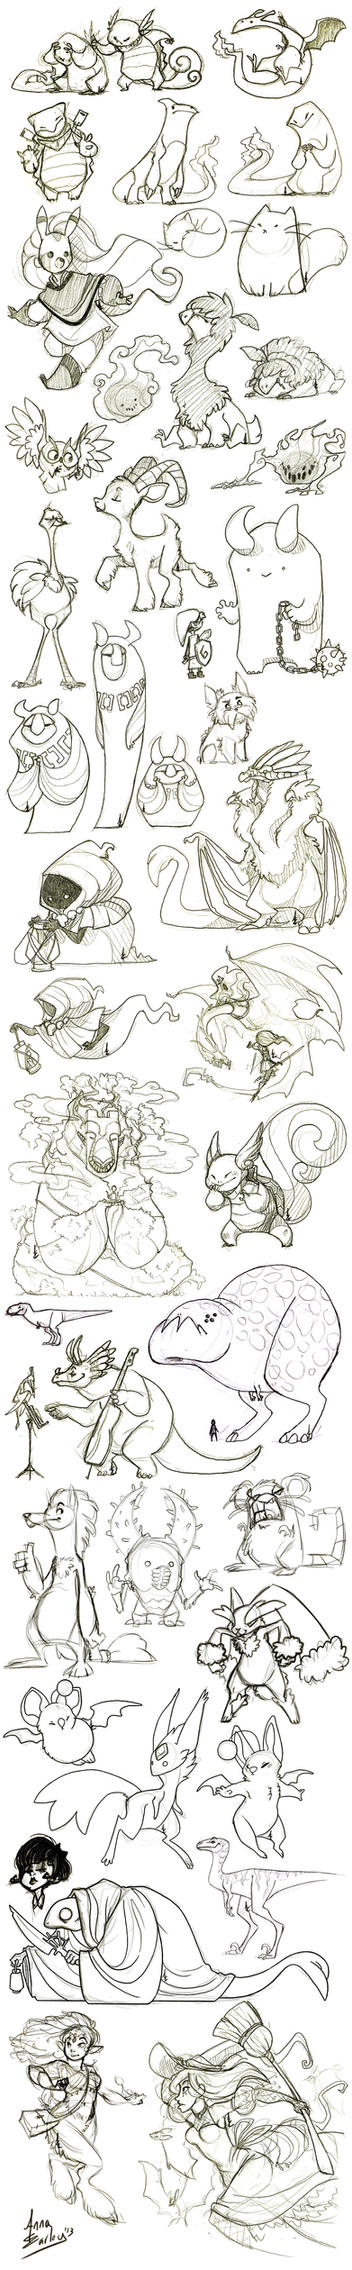 Great Big Sketchdump WInter '13 by Turtle-Arts